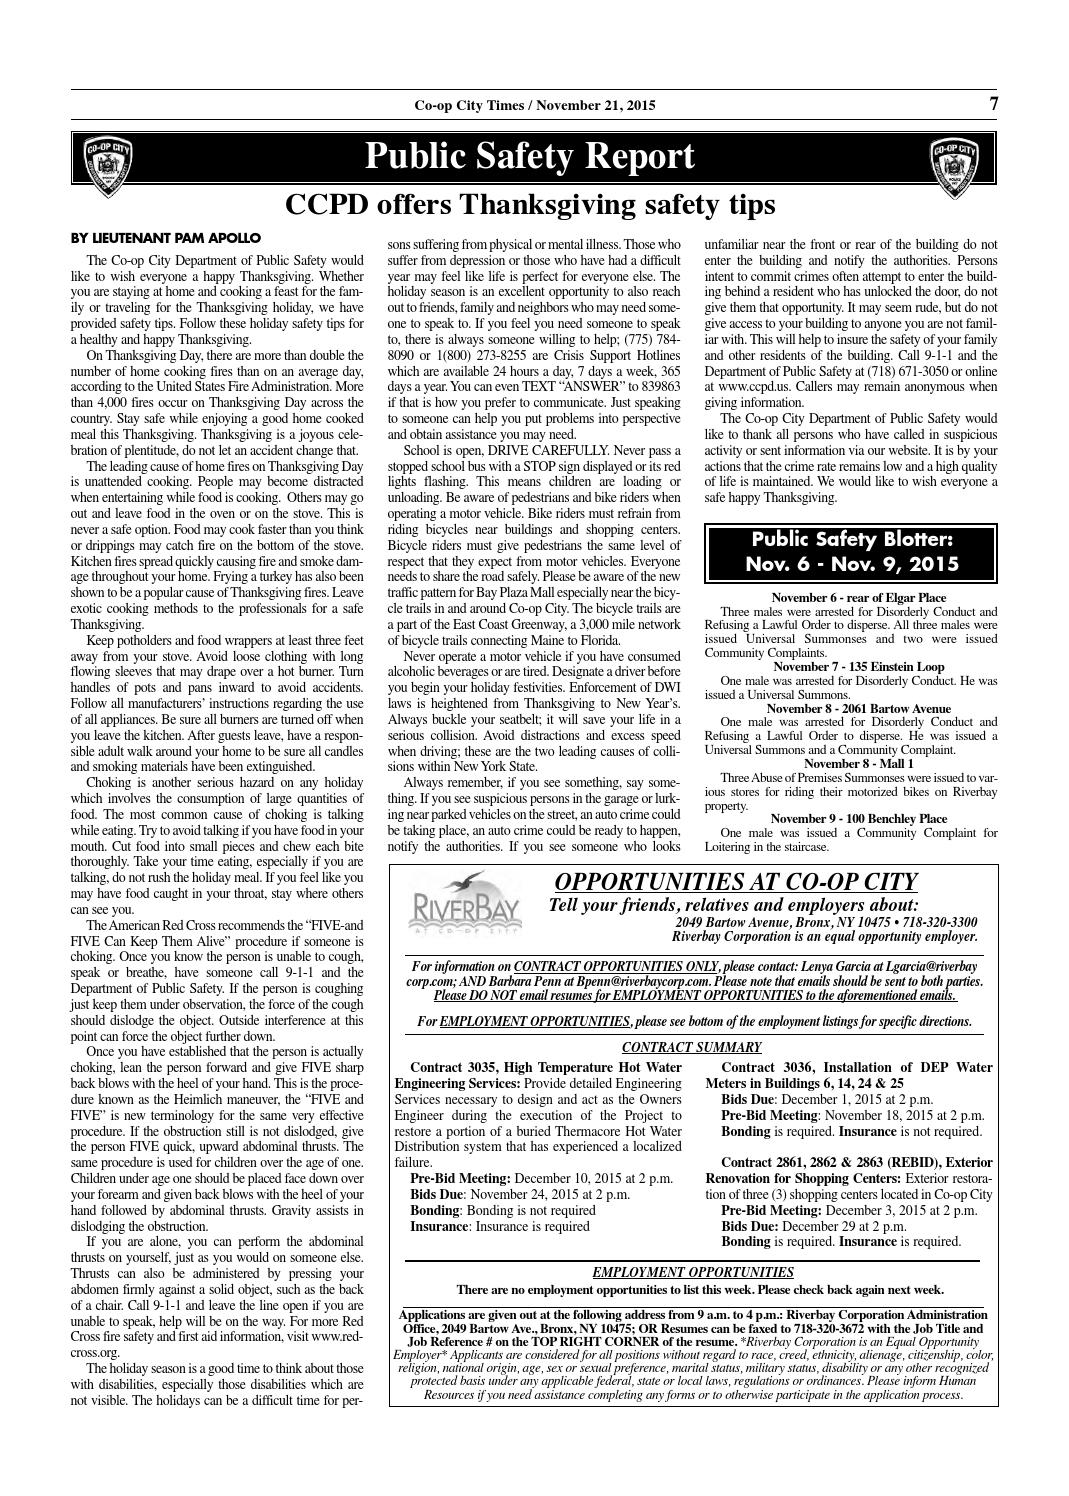 Co-op City Times 11/21/15 by Co-op City Times - issuu